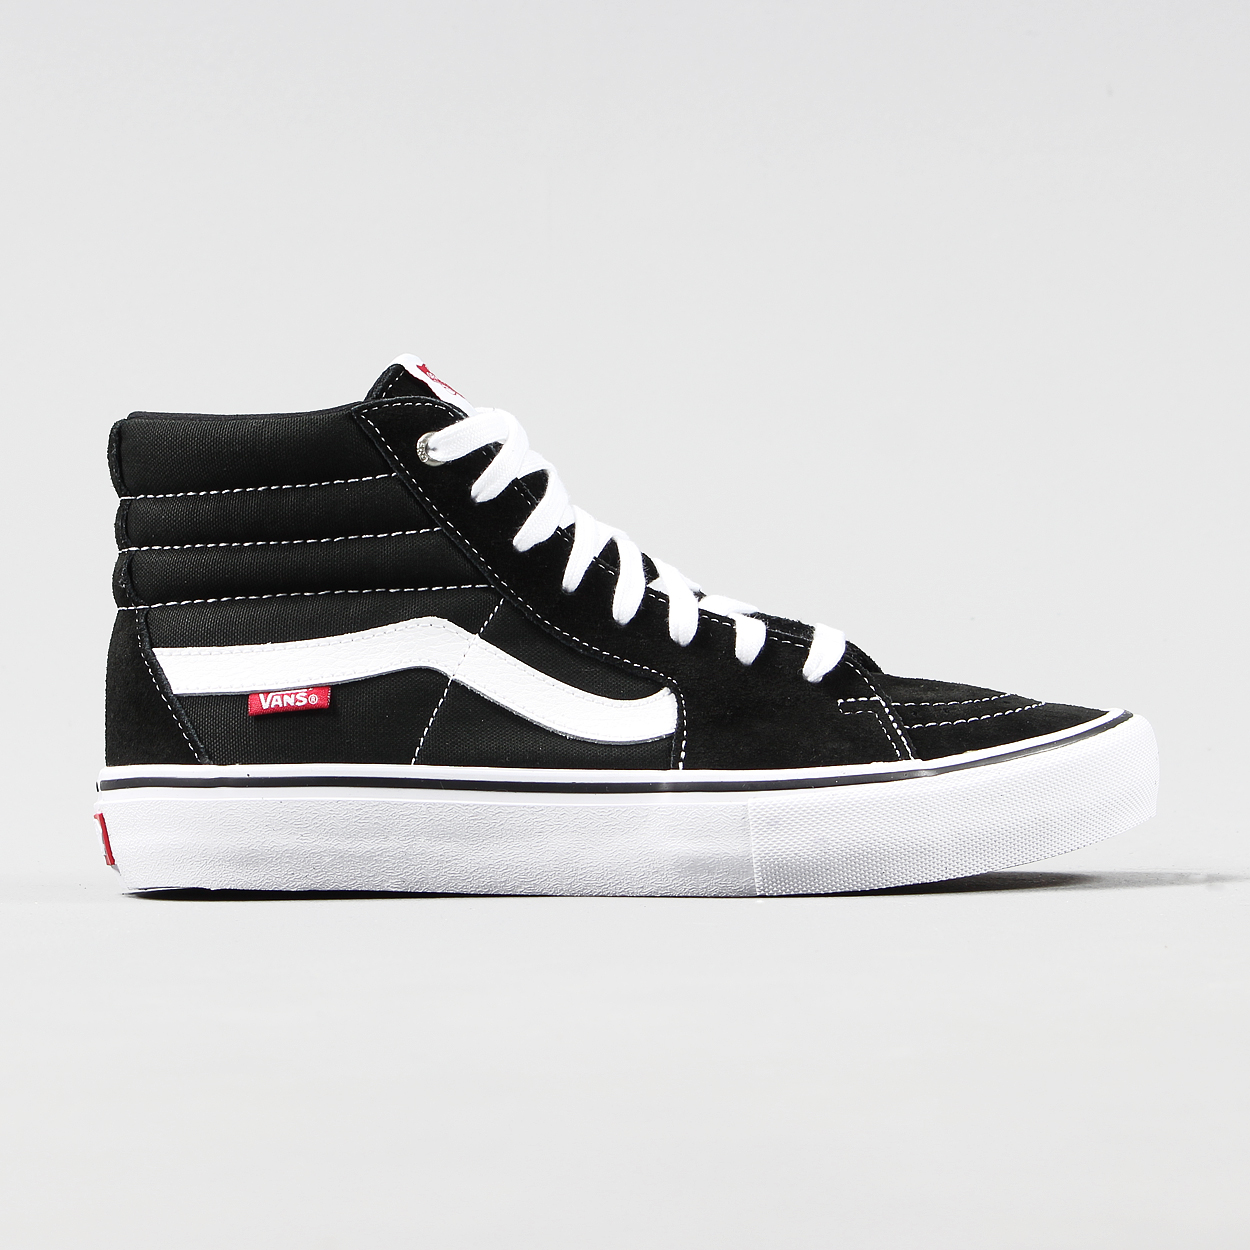 ca2d2d90d95 Vans Core Skate Sk8 Hi Pro Mens Suede Shoes Black White High Top £55.00